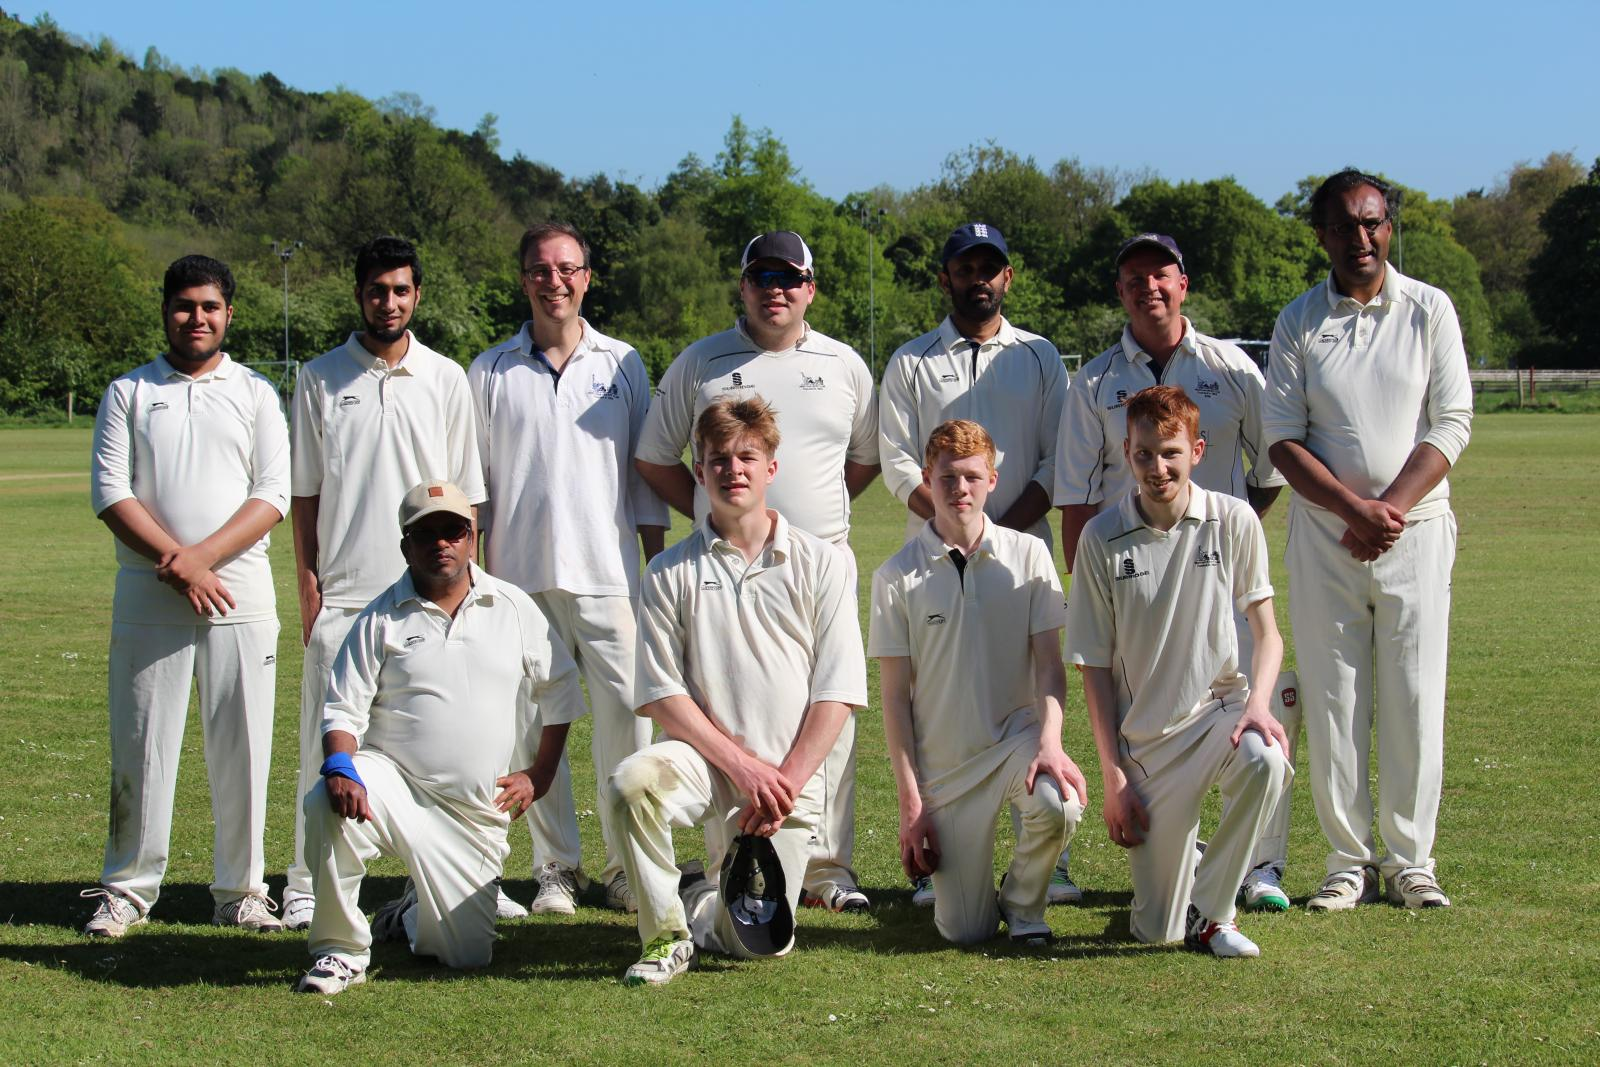 4th team at Dorking